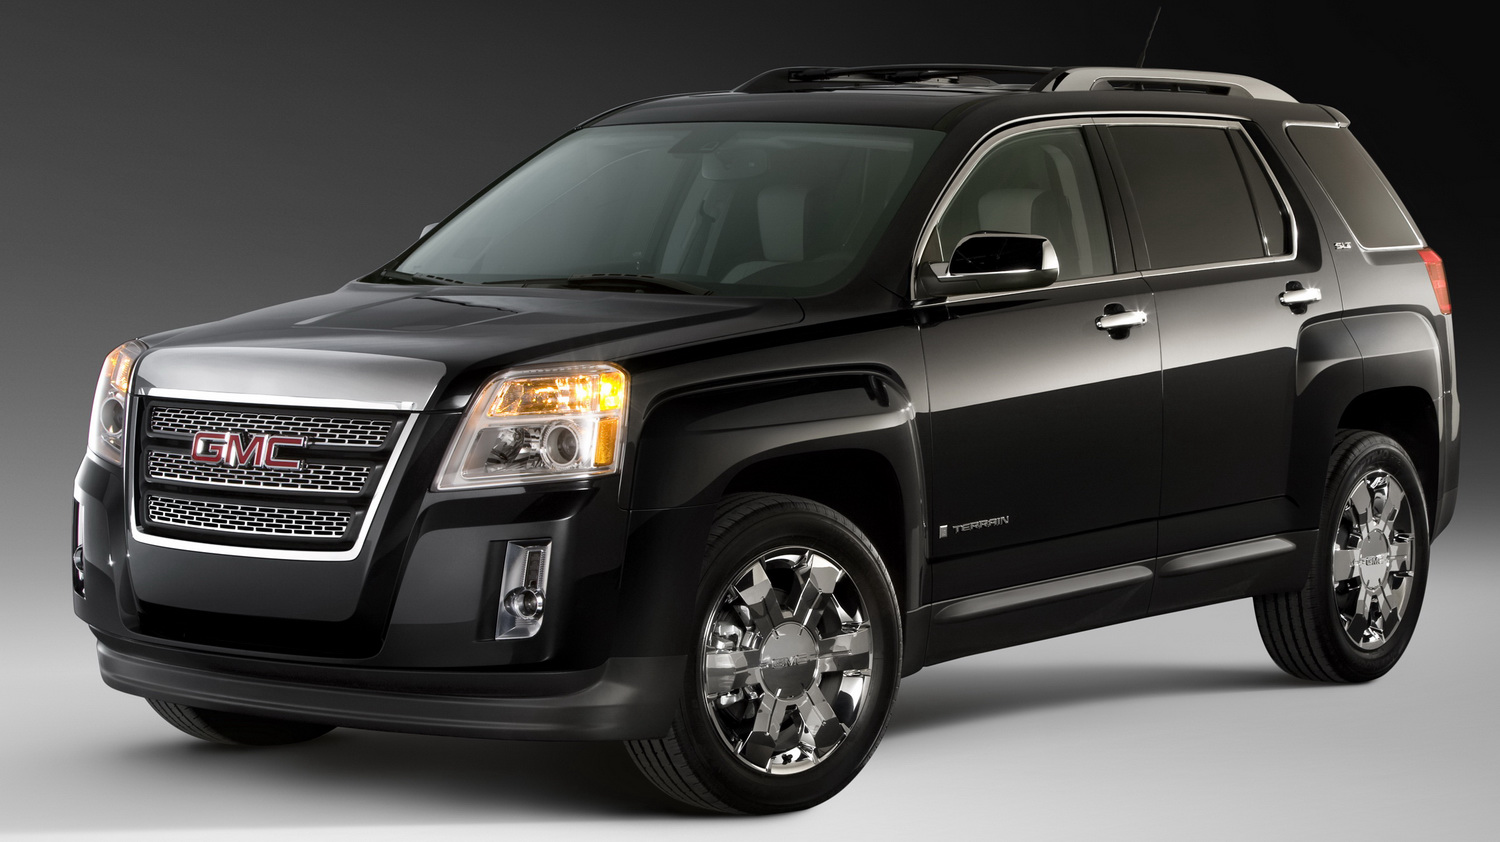 2010 gmc terrain suv with brawny looks and new 2 4l engine previewed before ny show. Black Bedroom Furniture Sets. Home Design Ideas